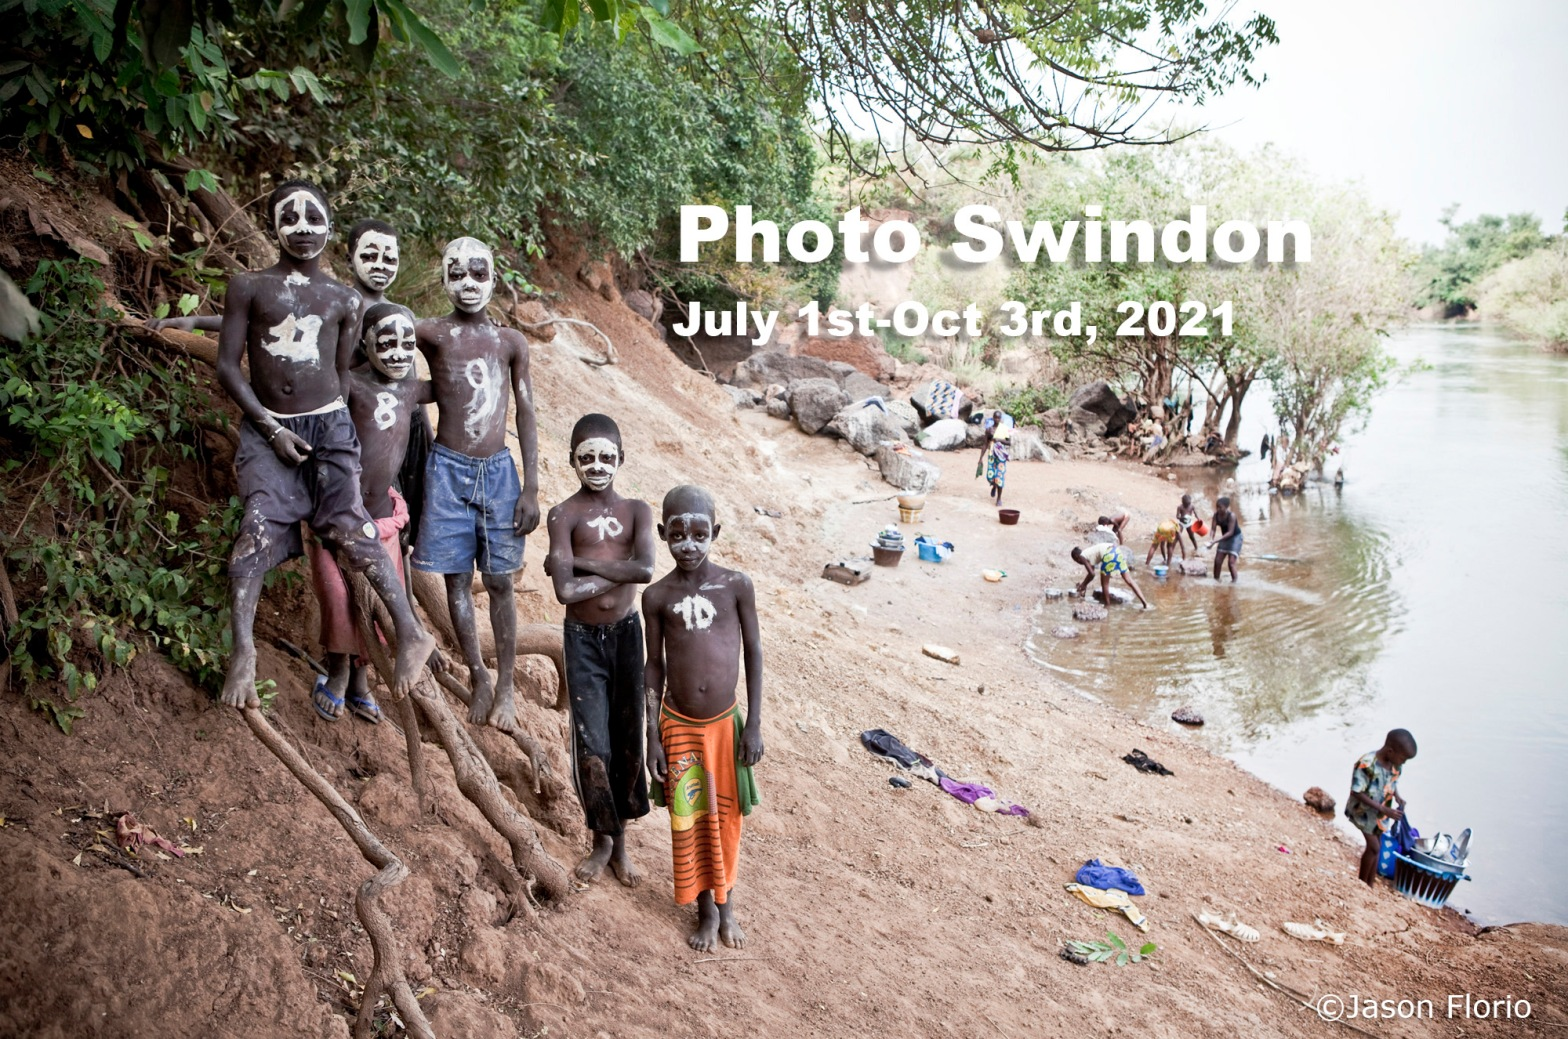 Photo Swindon International Photography Exhibition - 1st July-3rd October, 2021. Boys with painted faces stand looking at the camera, by the River Gambia, West Africa - advertisement for Photoswindon photo exhibition. Image ©Jason Florio